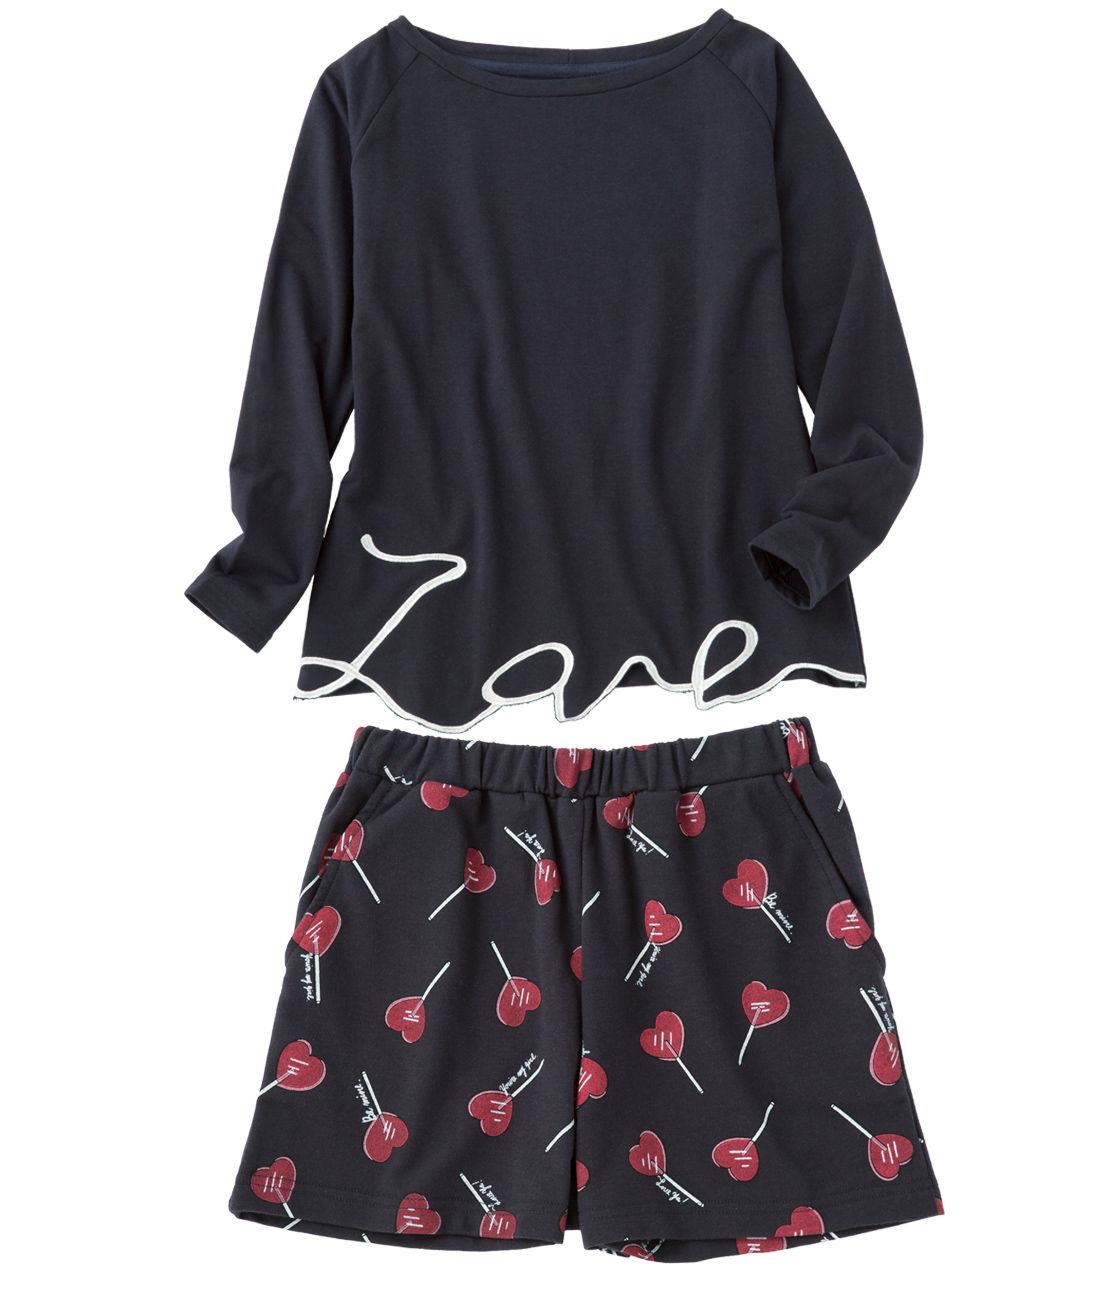 Happy Lovers love letter pajamas